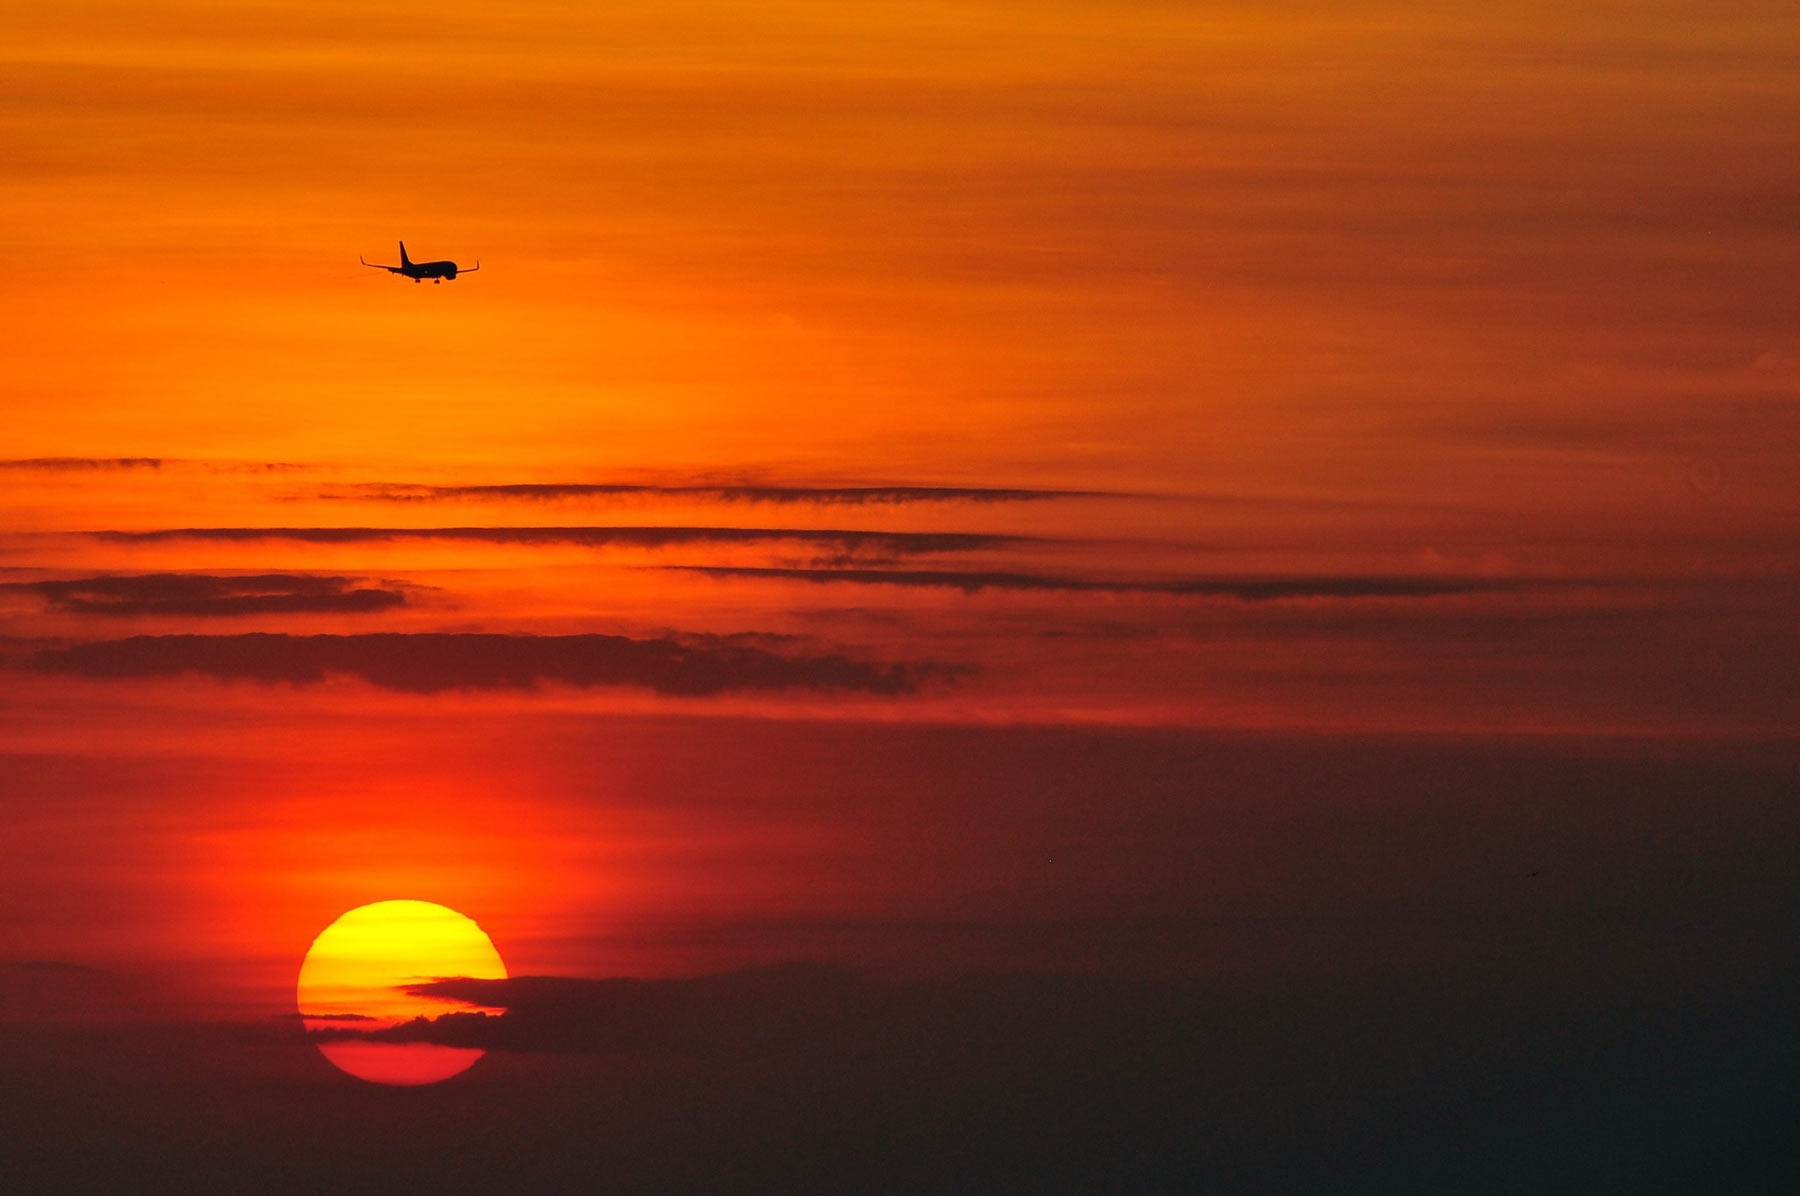 A plane flying over the clouds of a red and orange sunset.